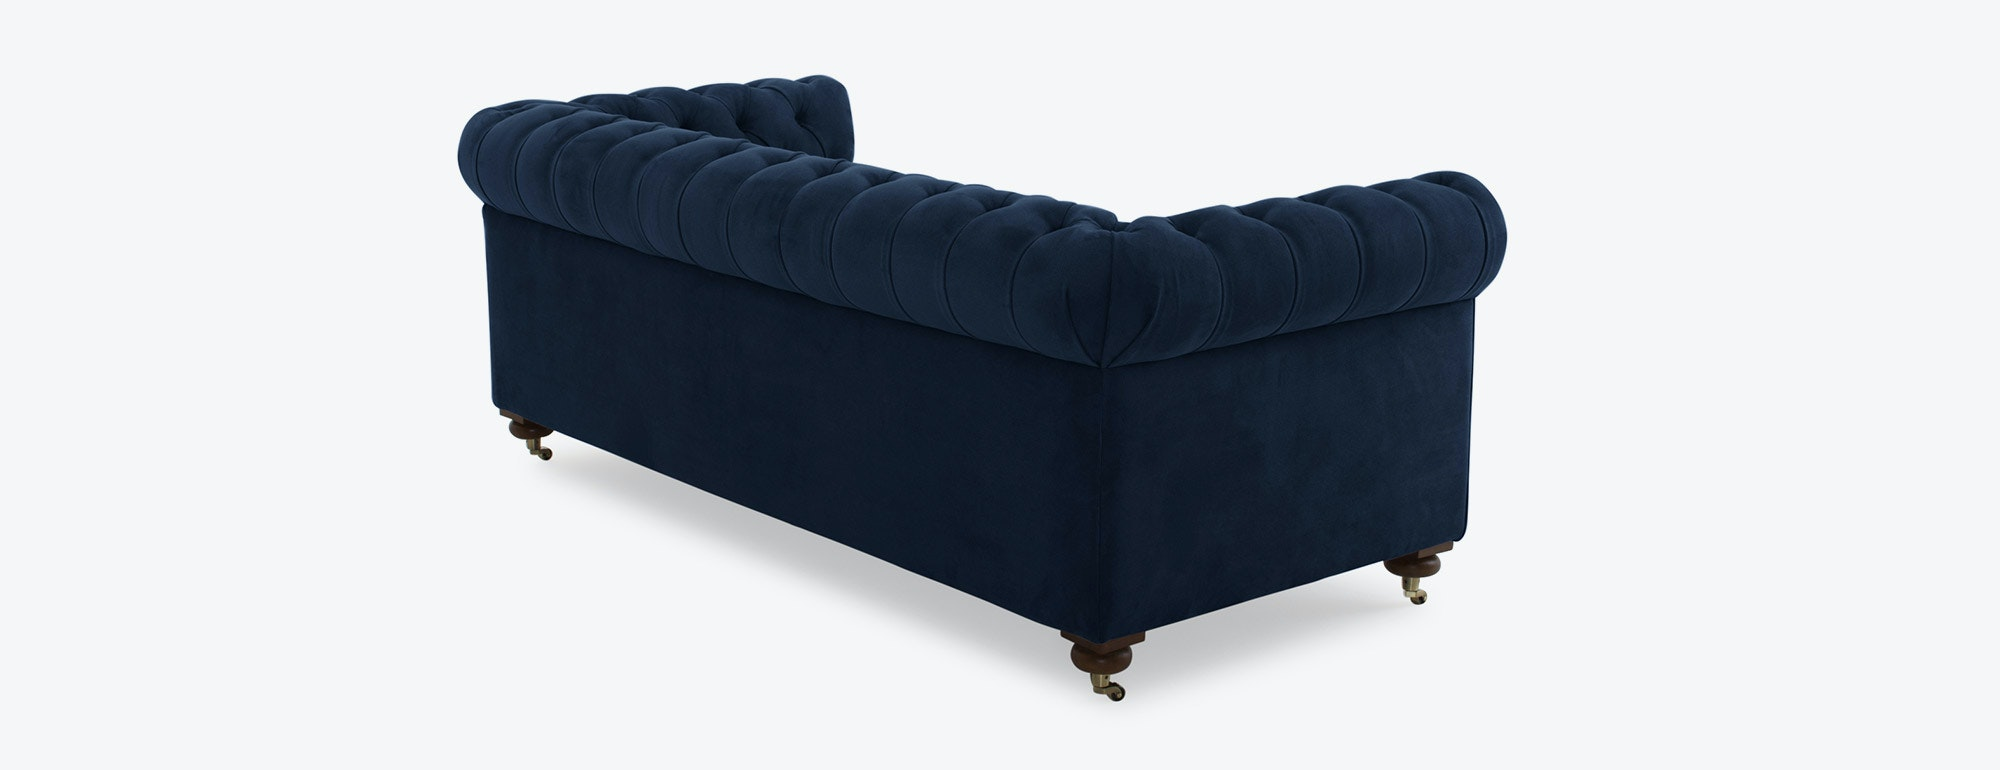 shown in Como Velvet Indigo Fabric